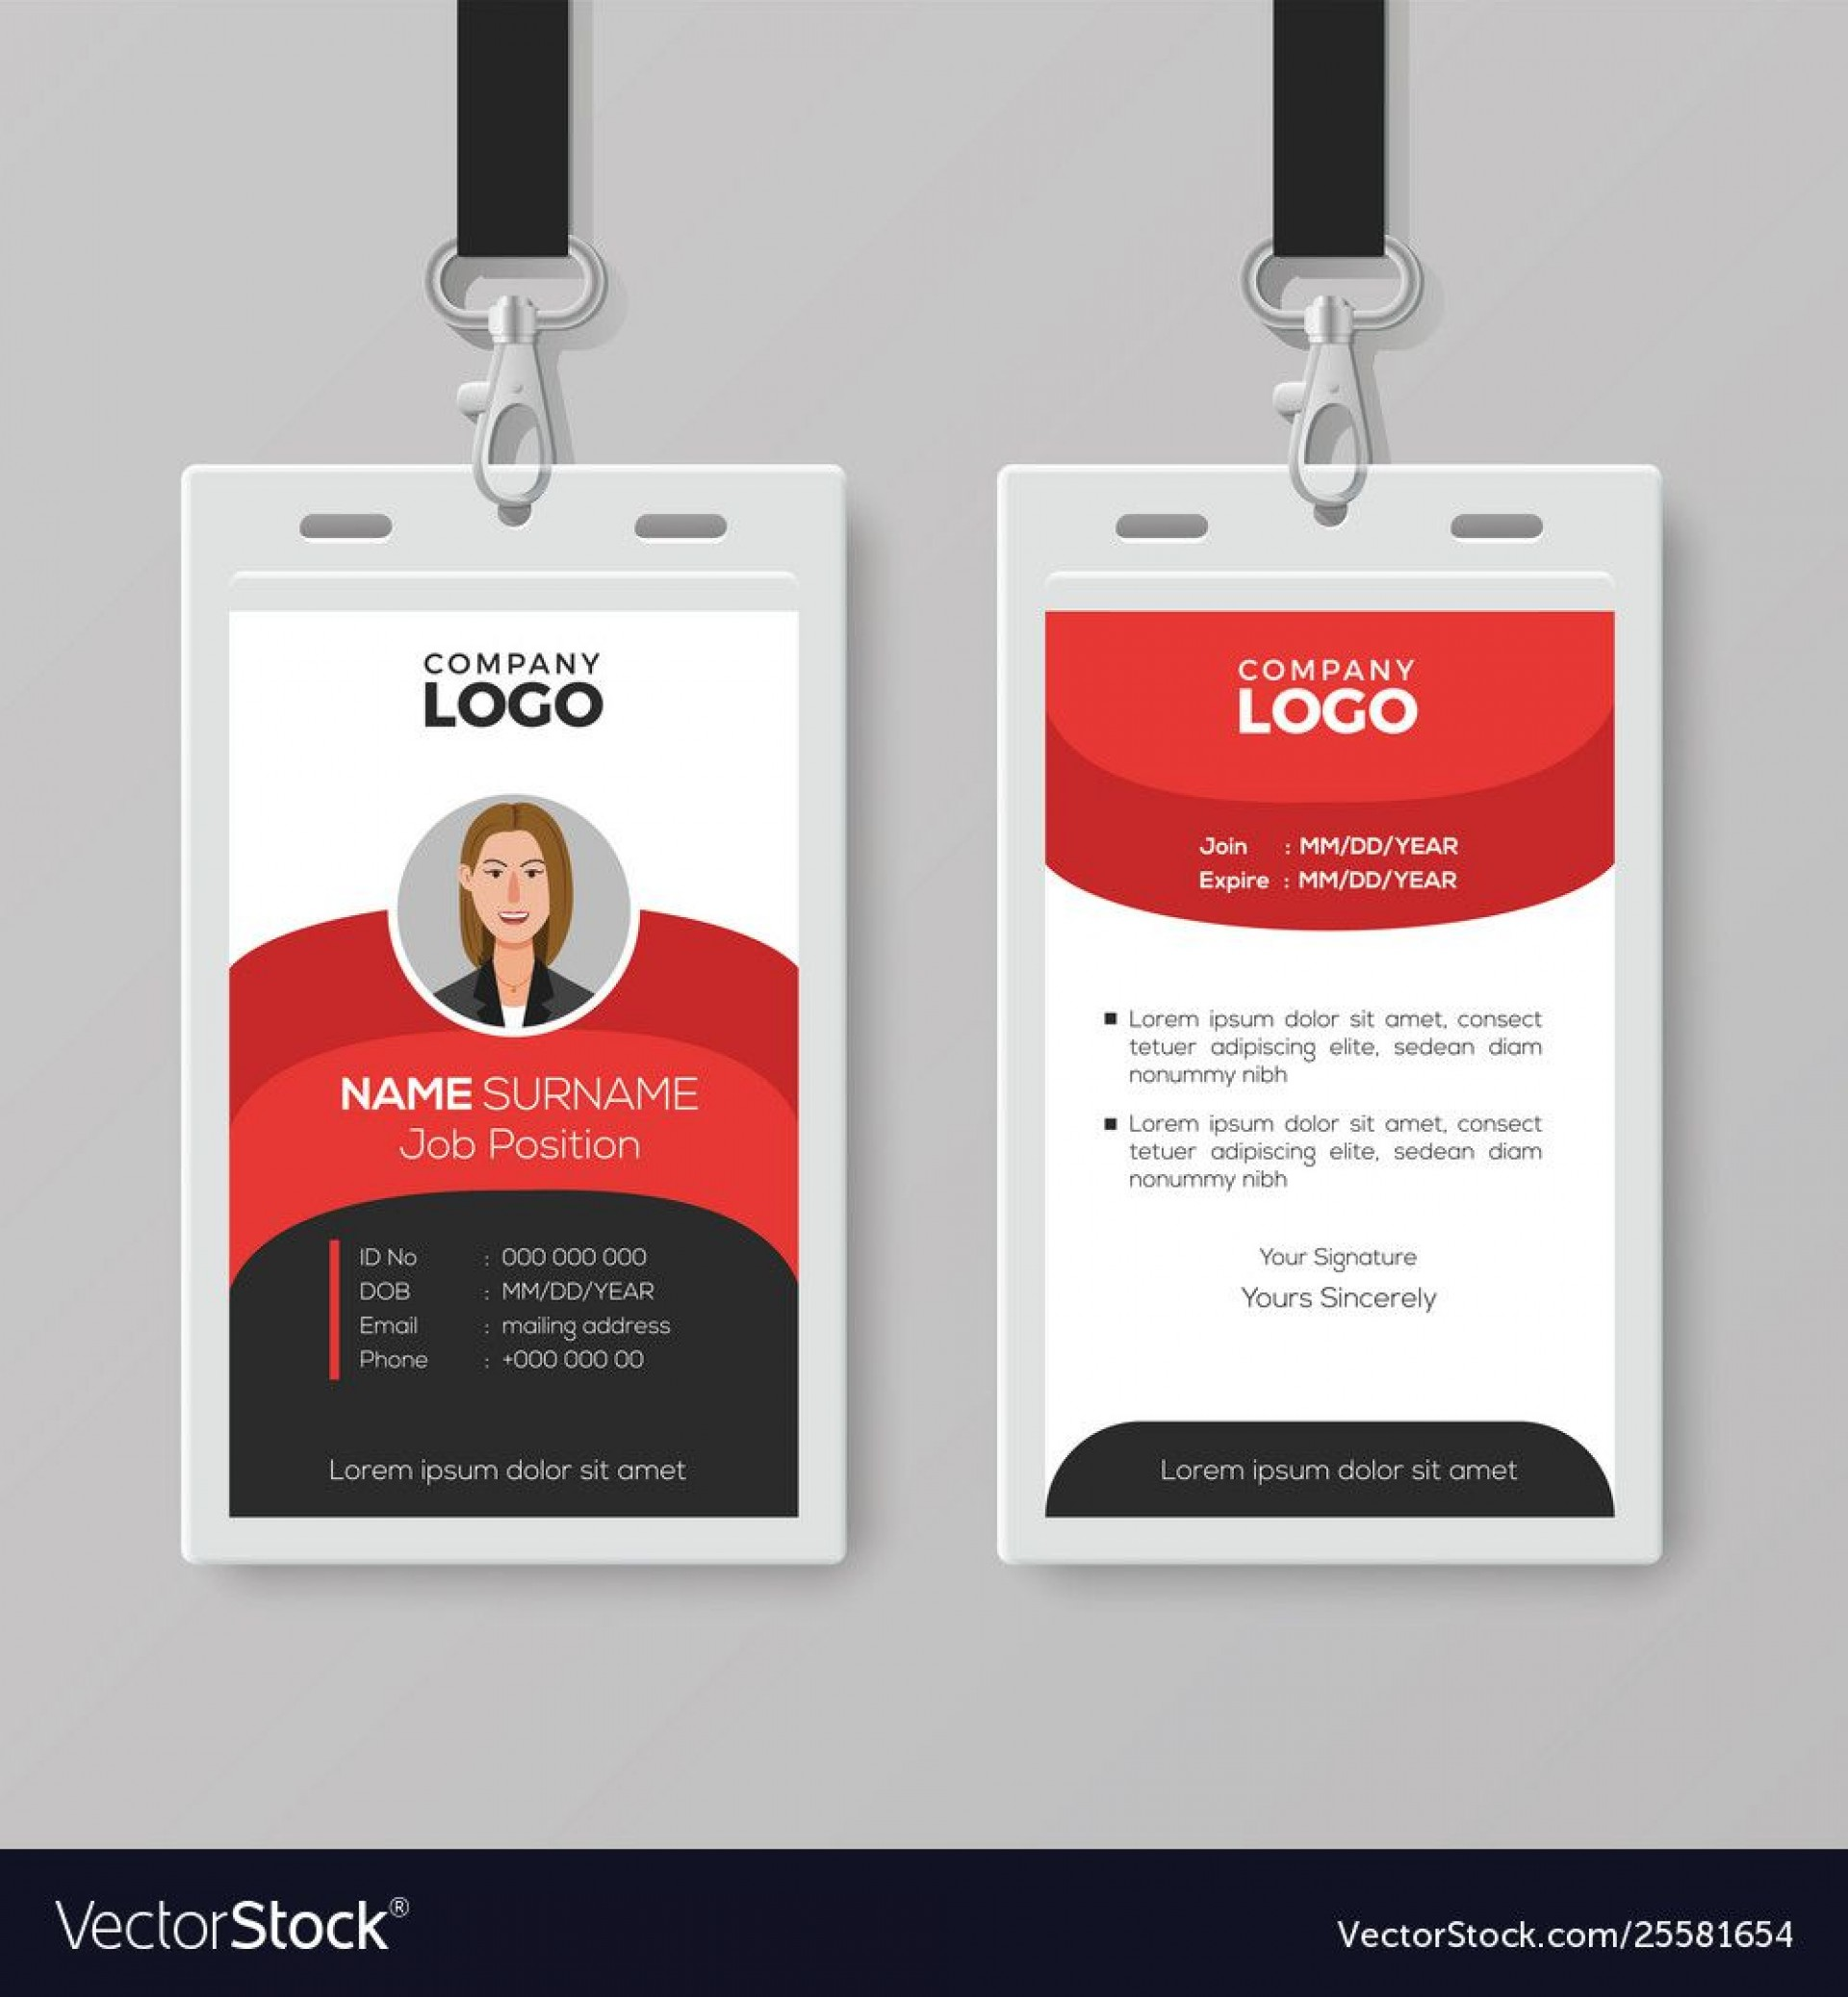 006 Awesome Employee Id Badge Template Design  Avery Card Free Download Word1920